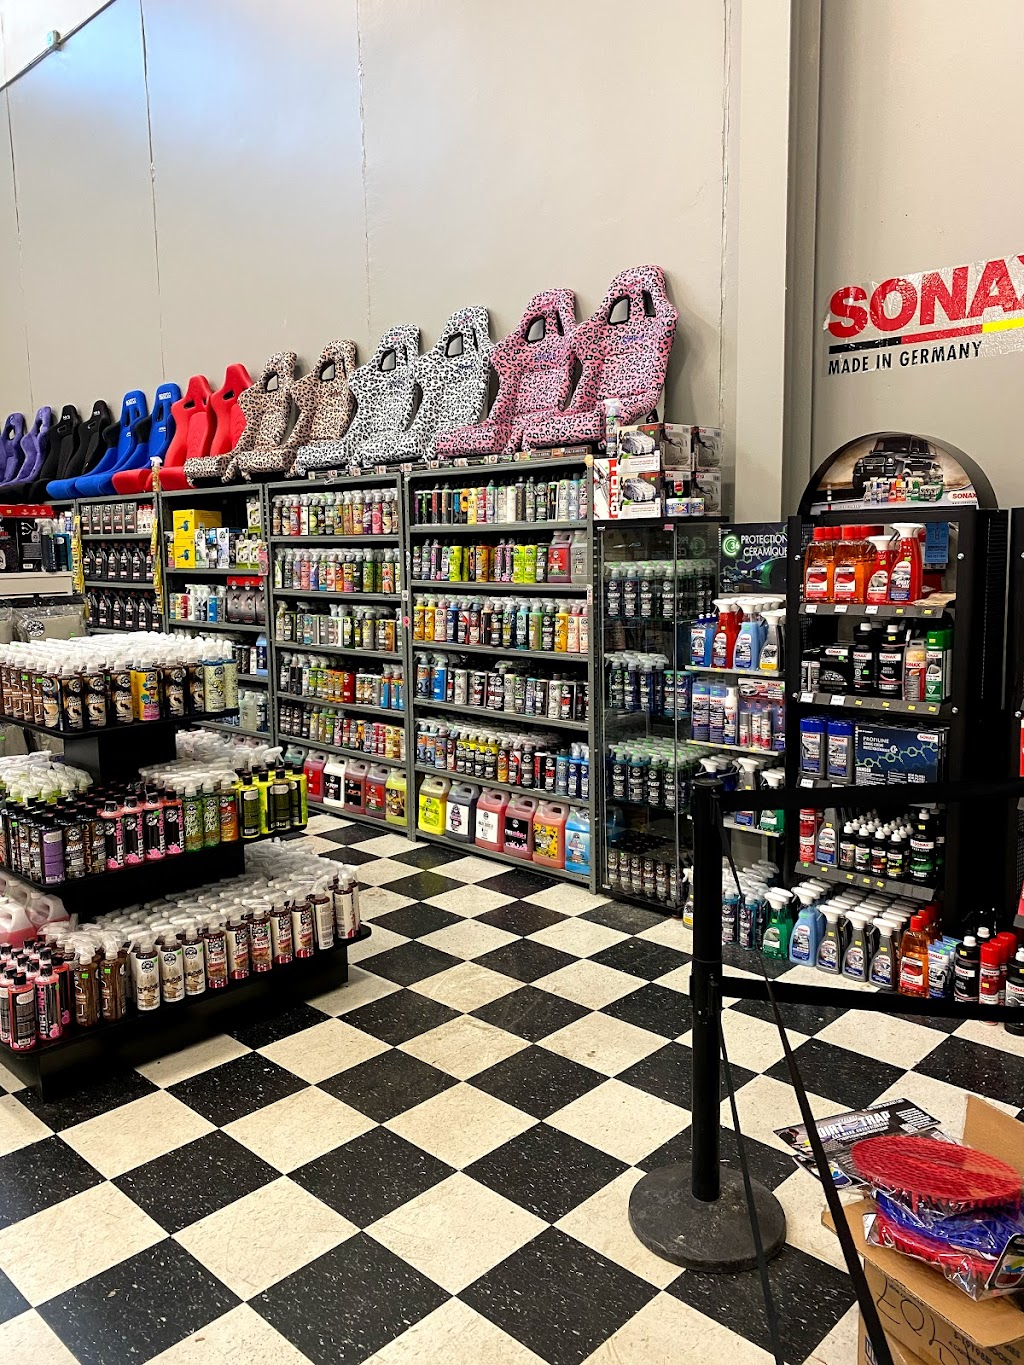 Automotive Warehouse Auto Parts & Accesories - car repair  | Photo 8 of 10 | Address: 343 Airport Rd, Niagara-on-the-Lake, ON L0S 1J0, Canada | Phone: (905) 682-1711